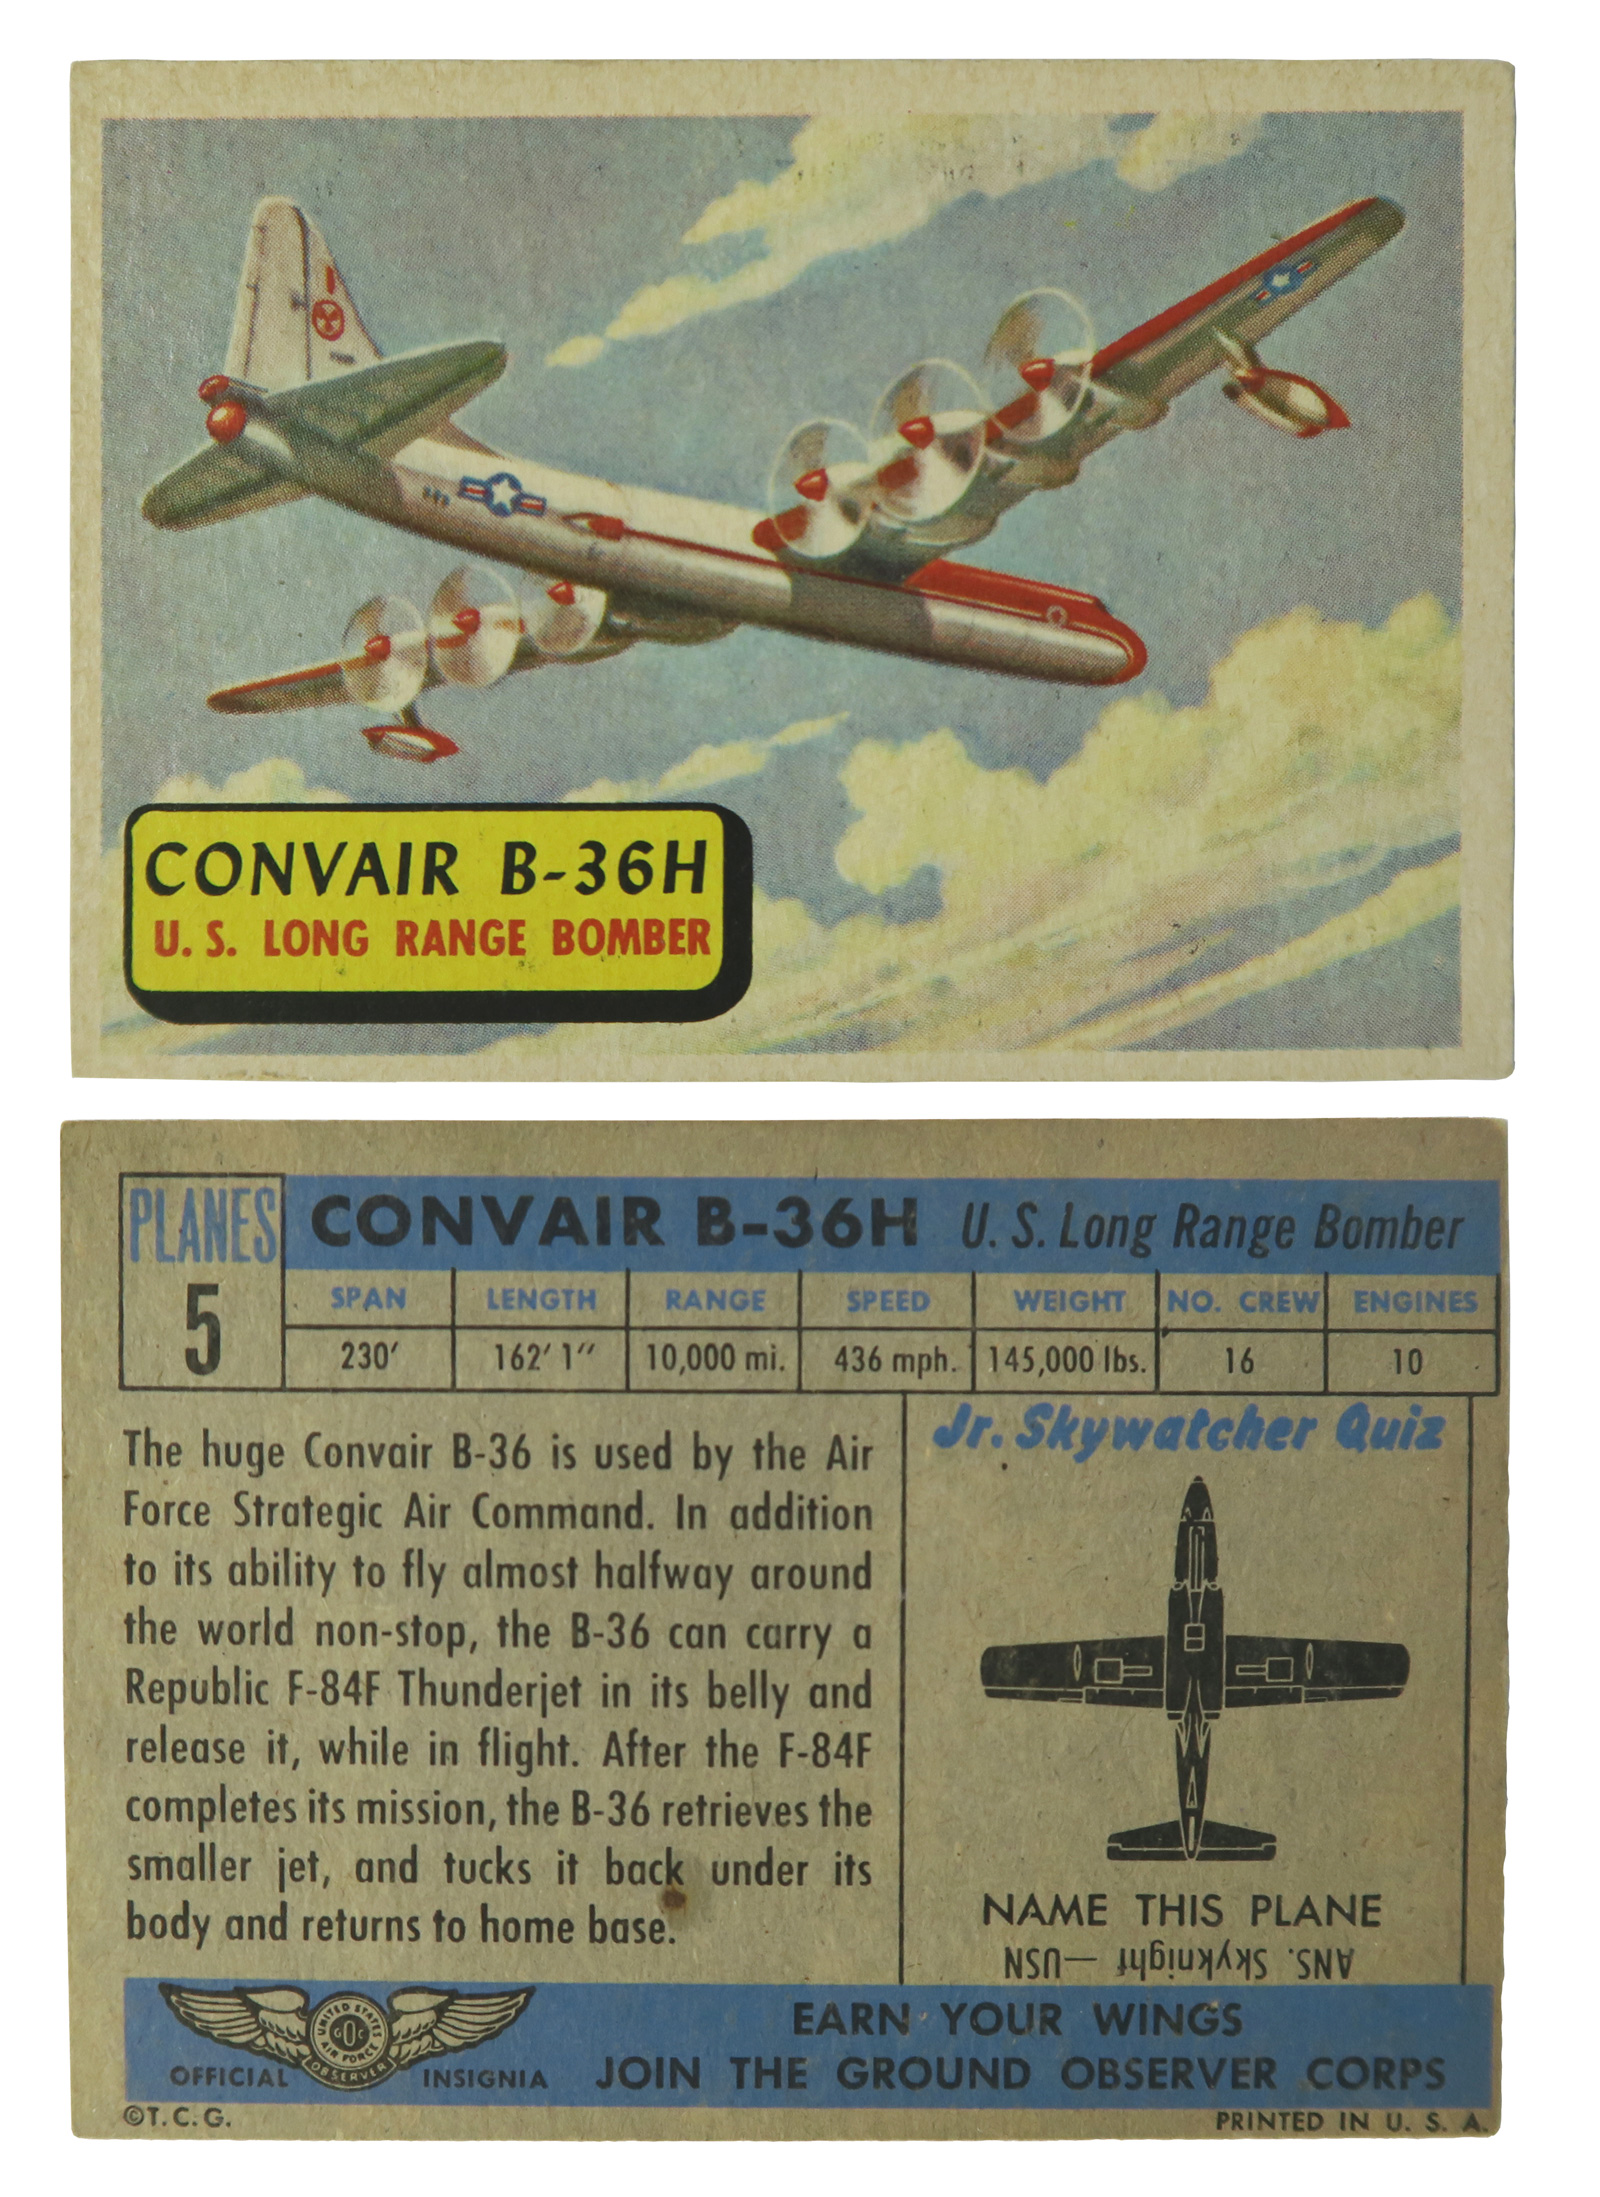 Convair B-36H #5 (Blue Back)  Series: Planes of the World Manufacture: Topps Chewing Gum Card Dimensions: 3.3 × 2.5 inches USA -1957